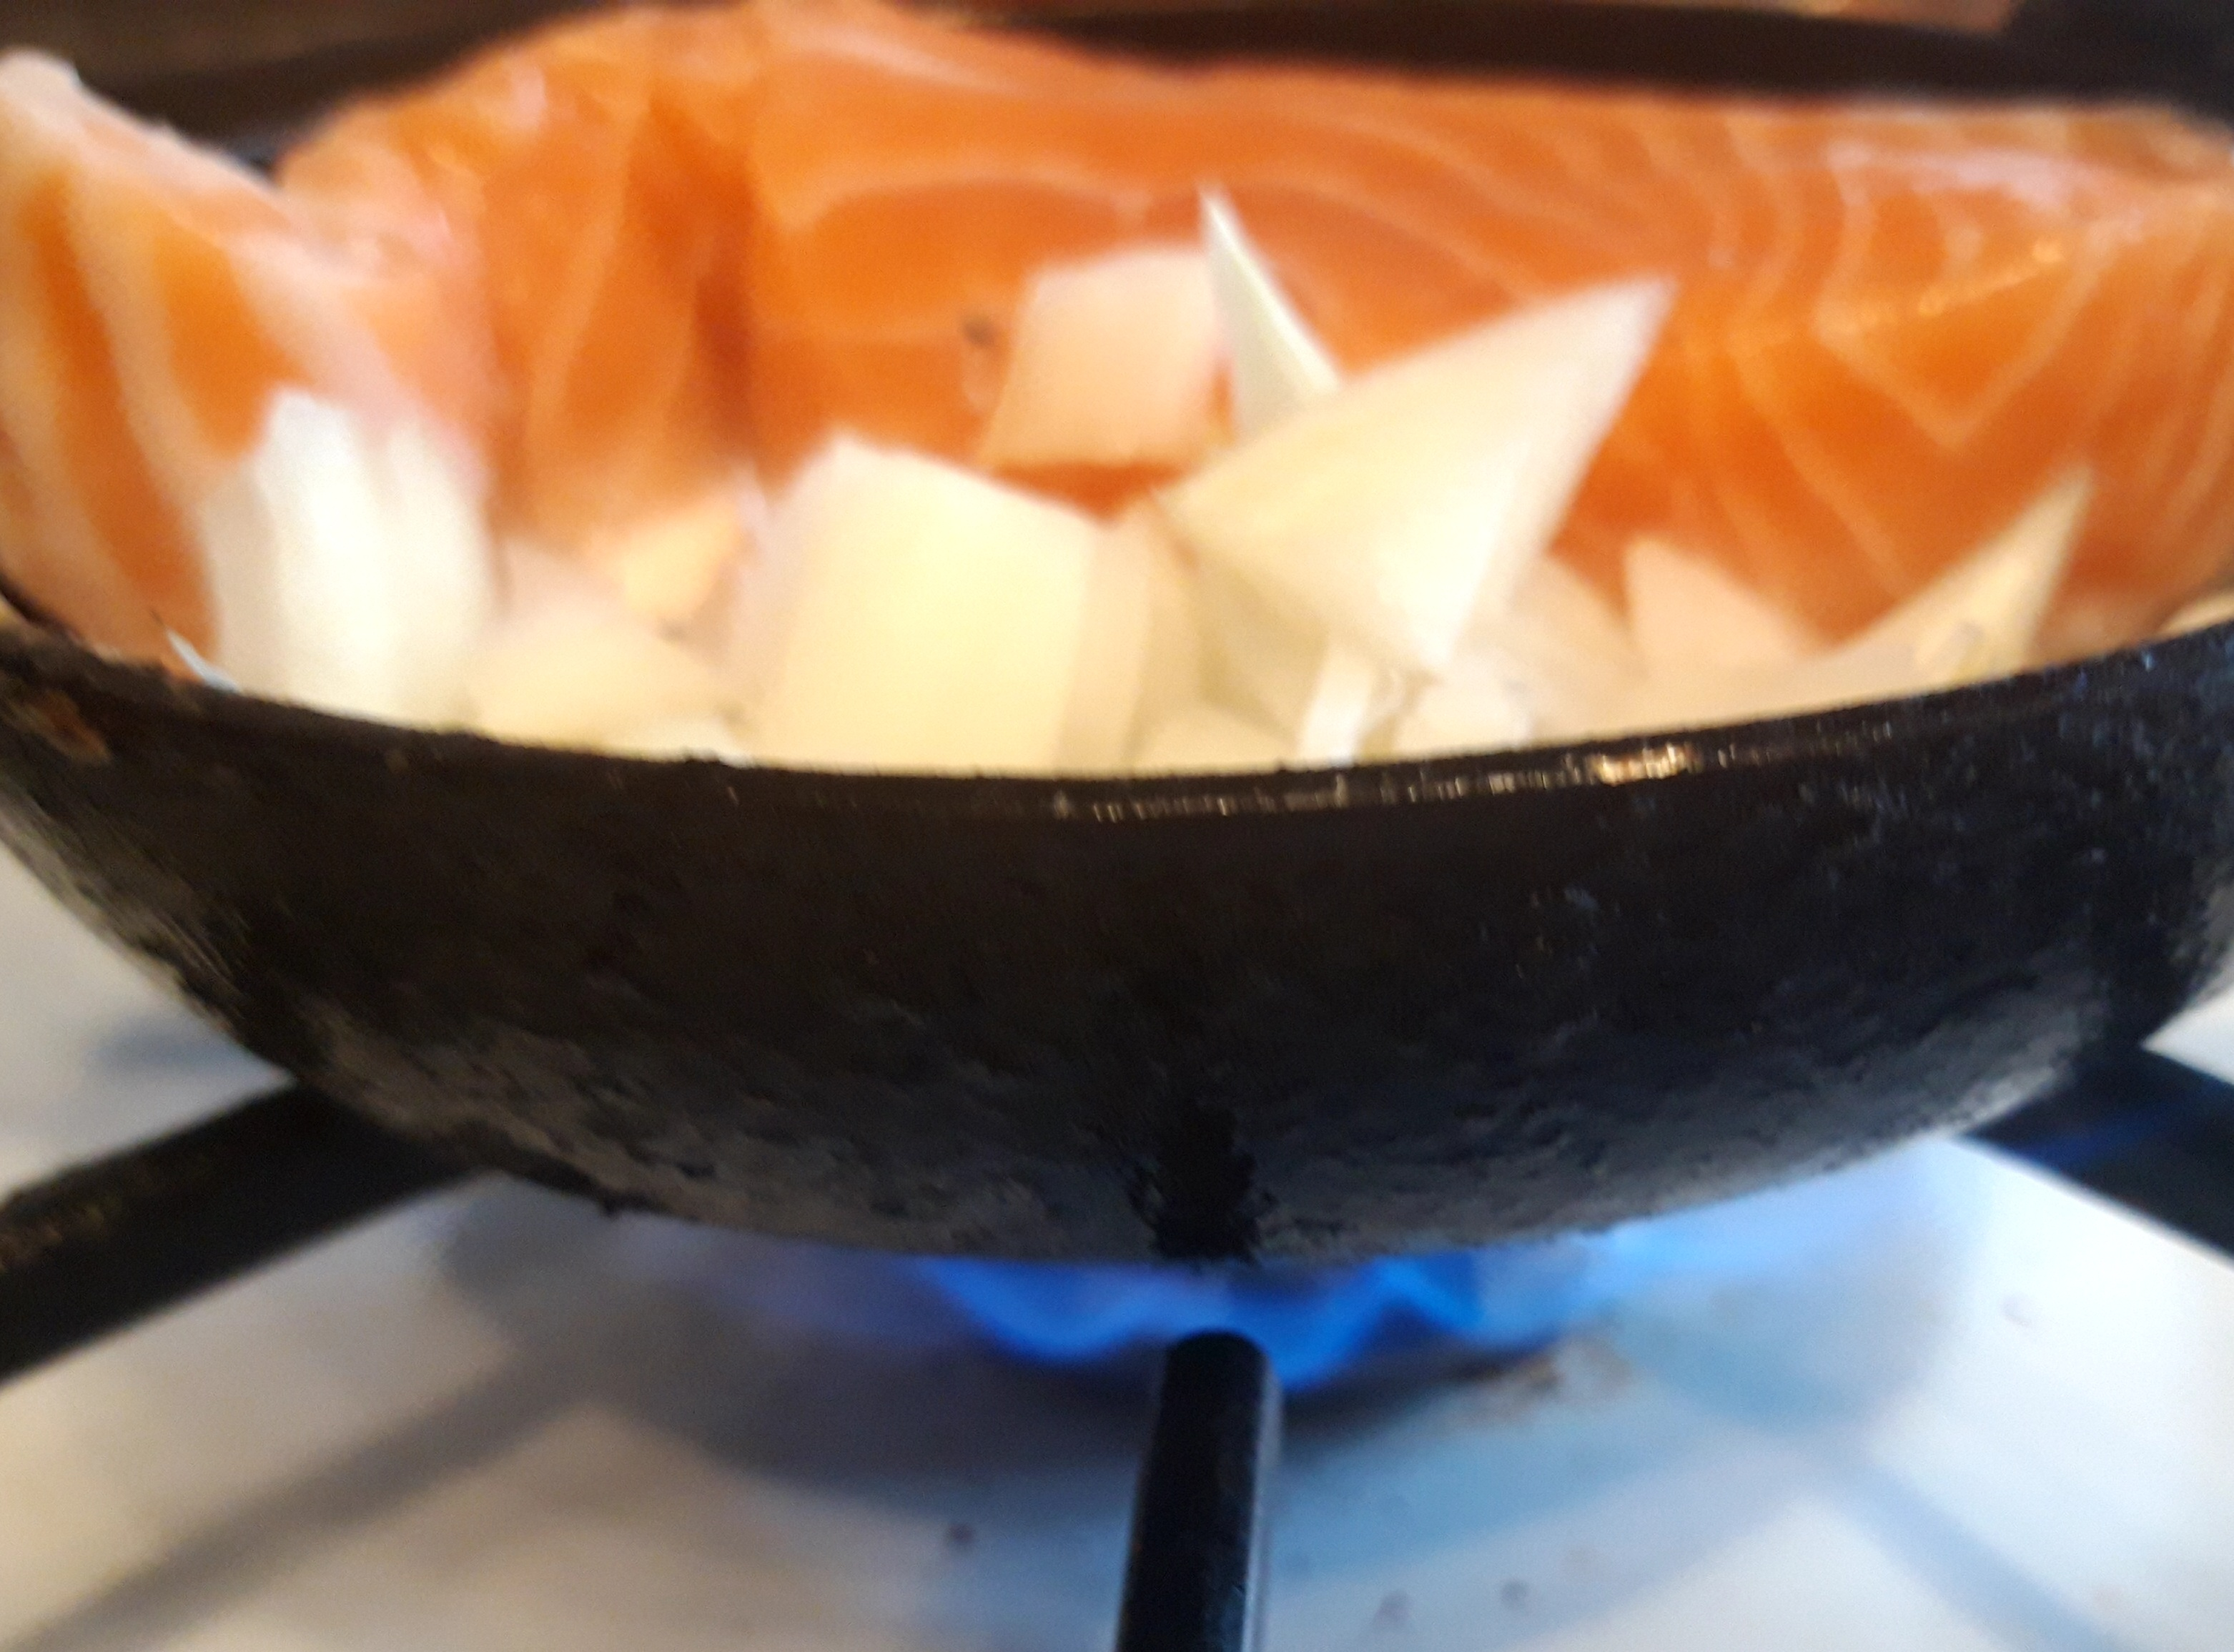 Frying onion with fresh salmon